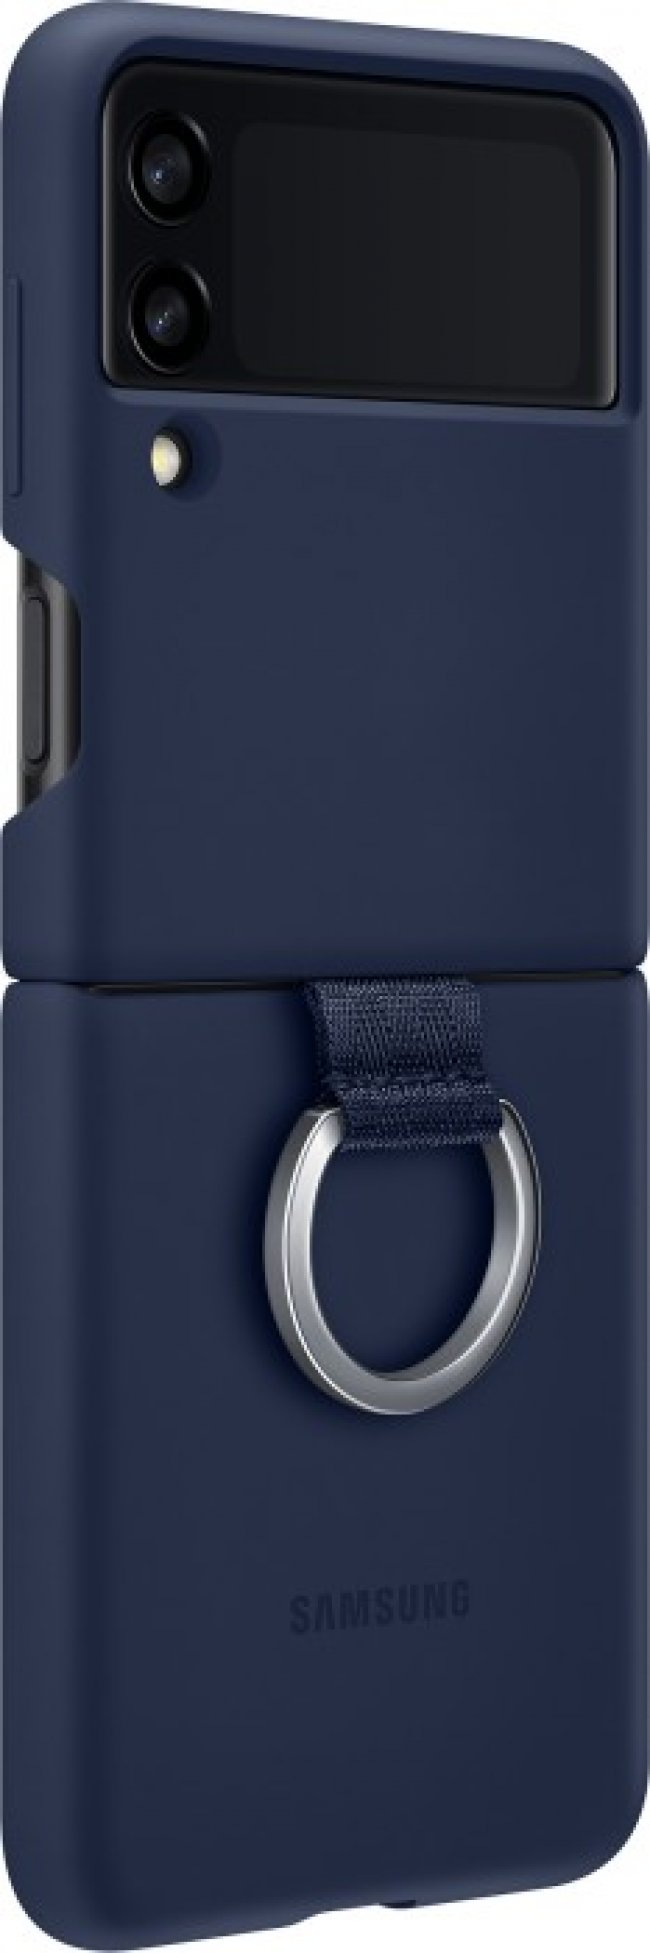 Калъф за Samsung Galaxy Z Flip3 5G Silicone Cover with Ring